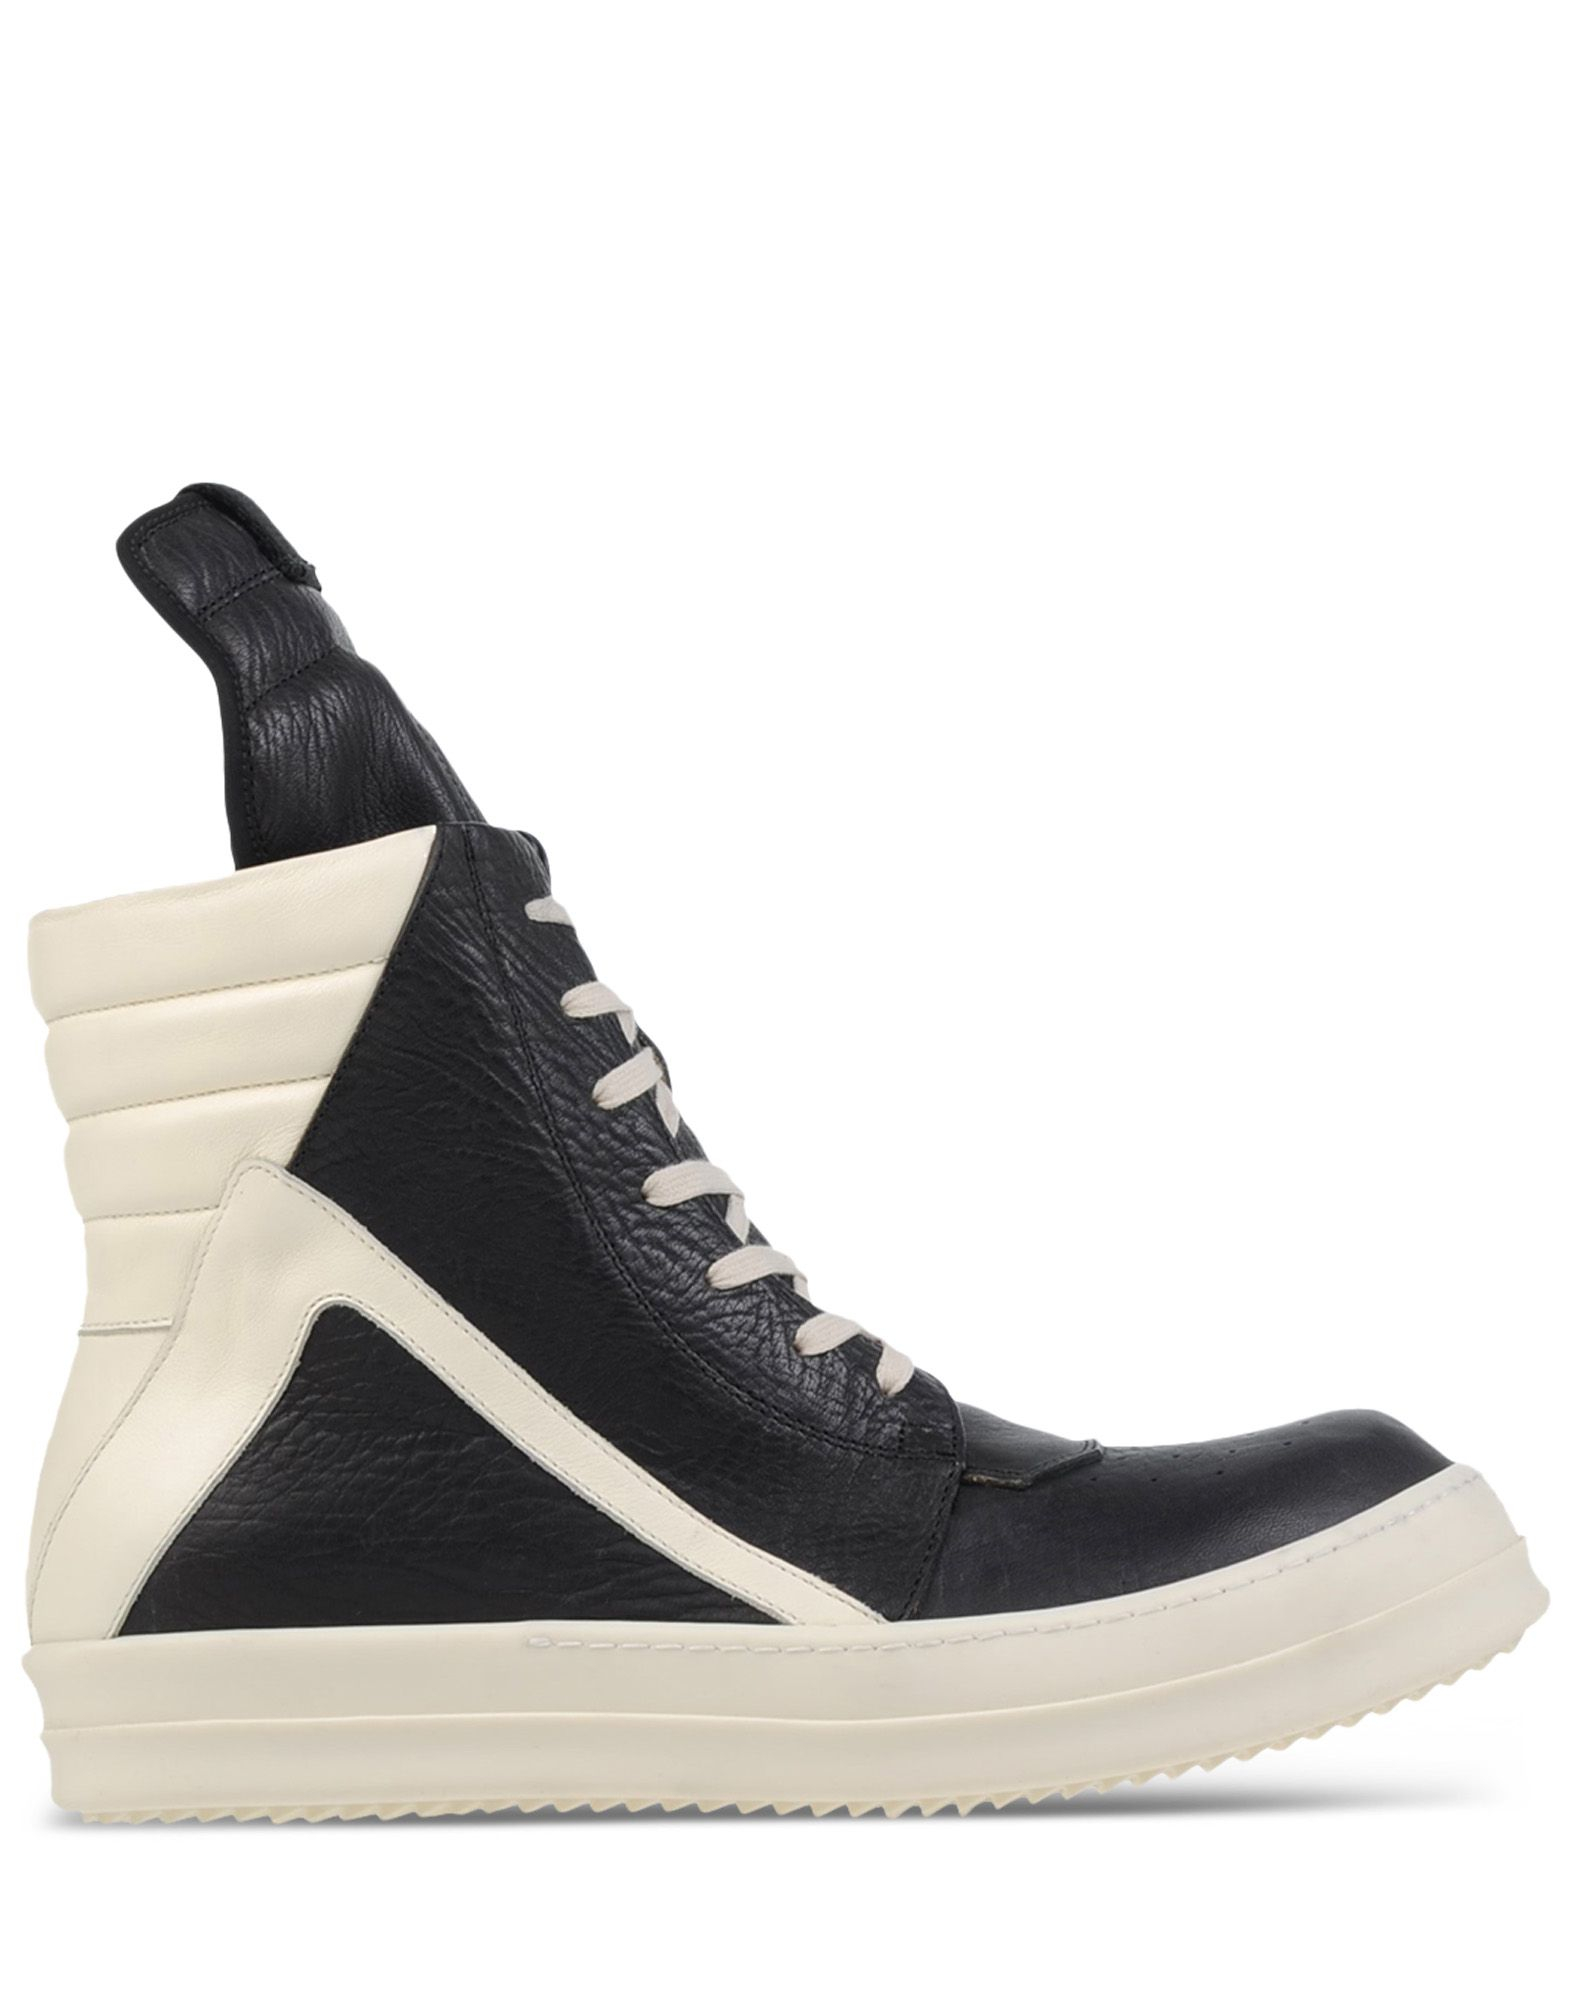 rick owens high top sneakers in black for men lyst. Black Bedroom Furniture Sets. Home Design Ideas